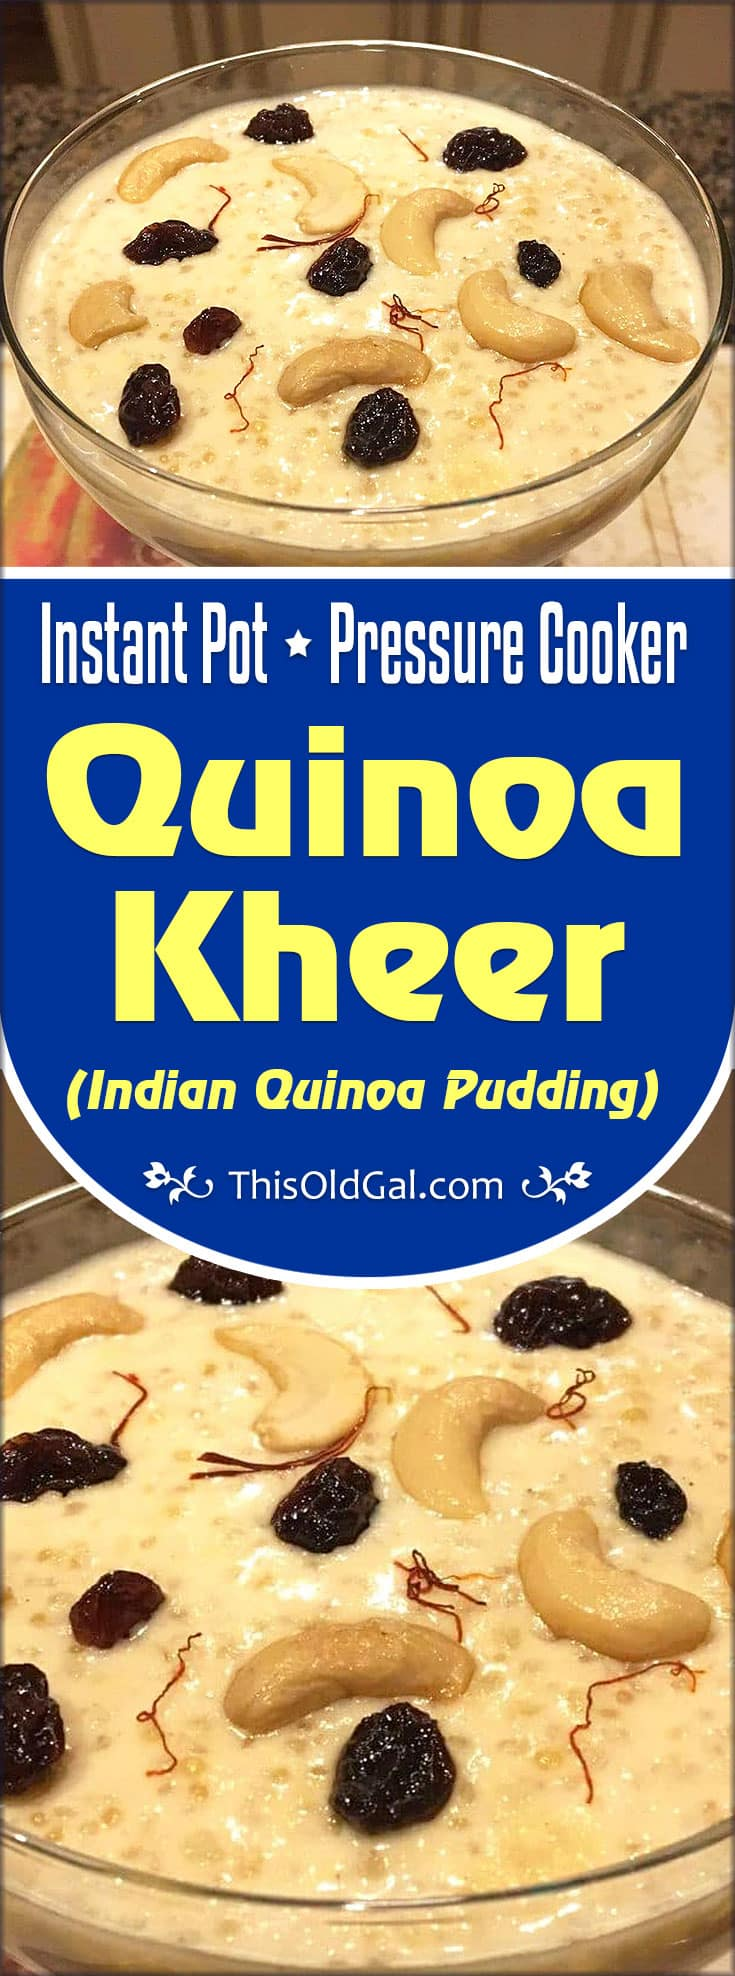 Pressure Cooker Quinoa Kheer (Indian Quinoa Pudding)